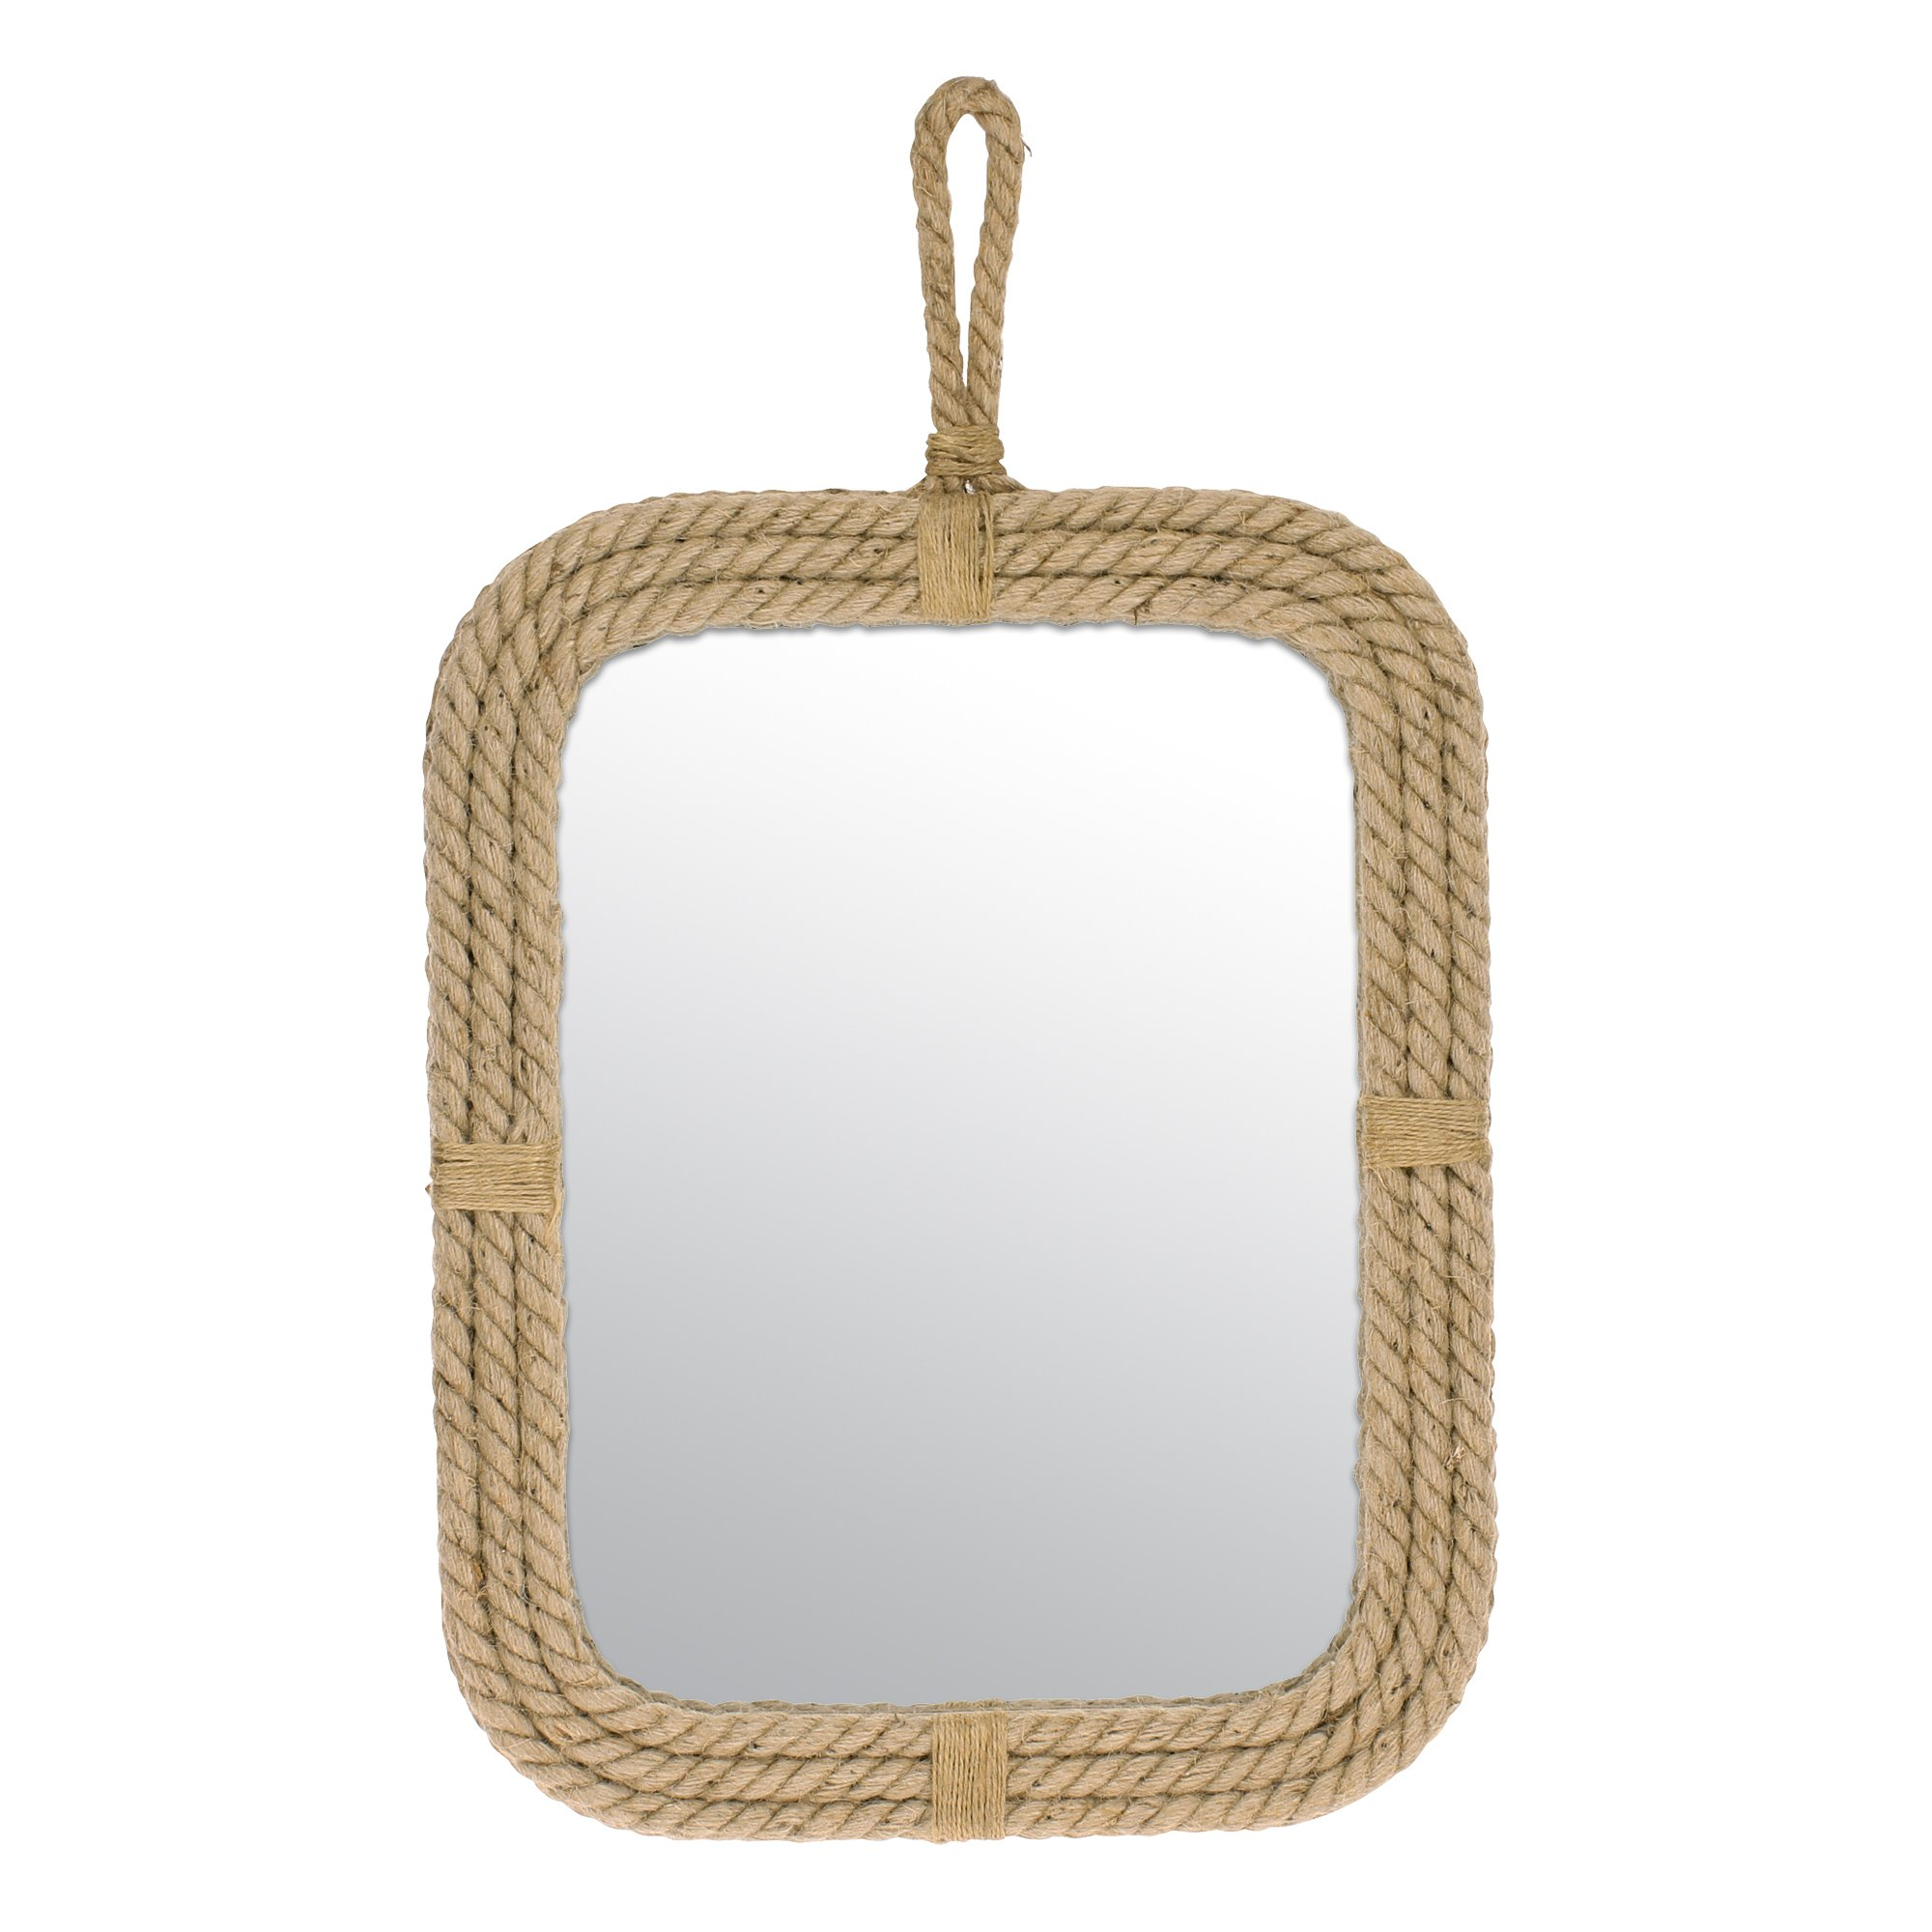 Stonebriar Vertical Rectangle Rope Mirror for Wall, Unique Country Décor